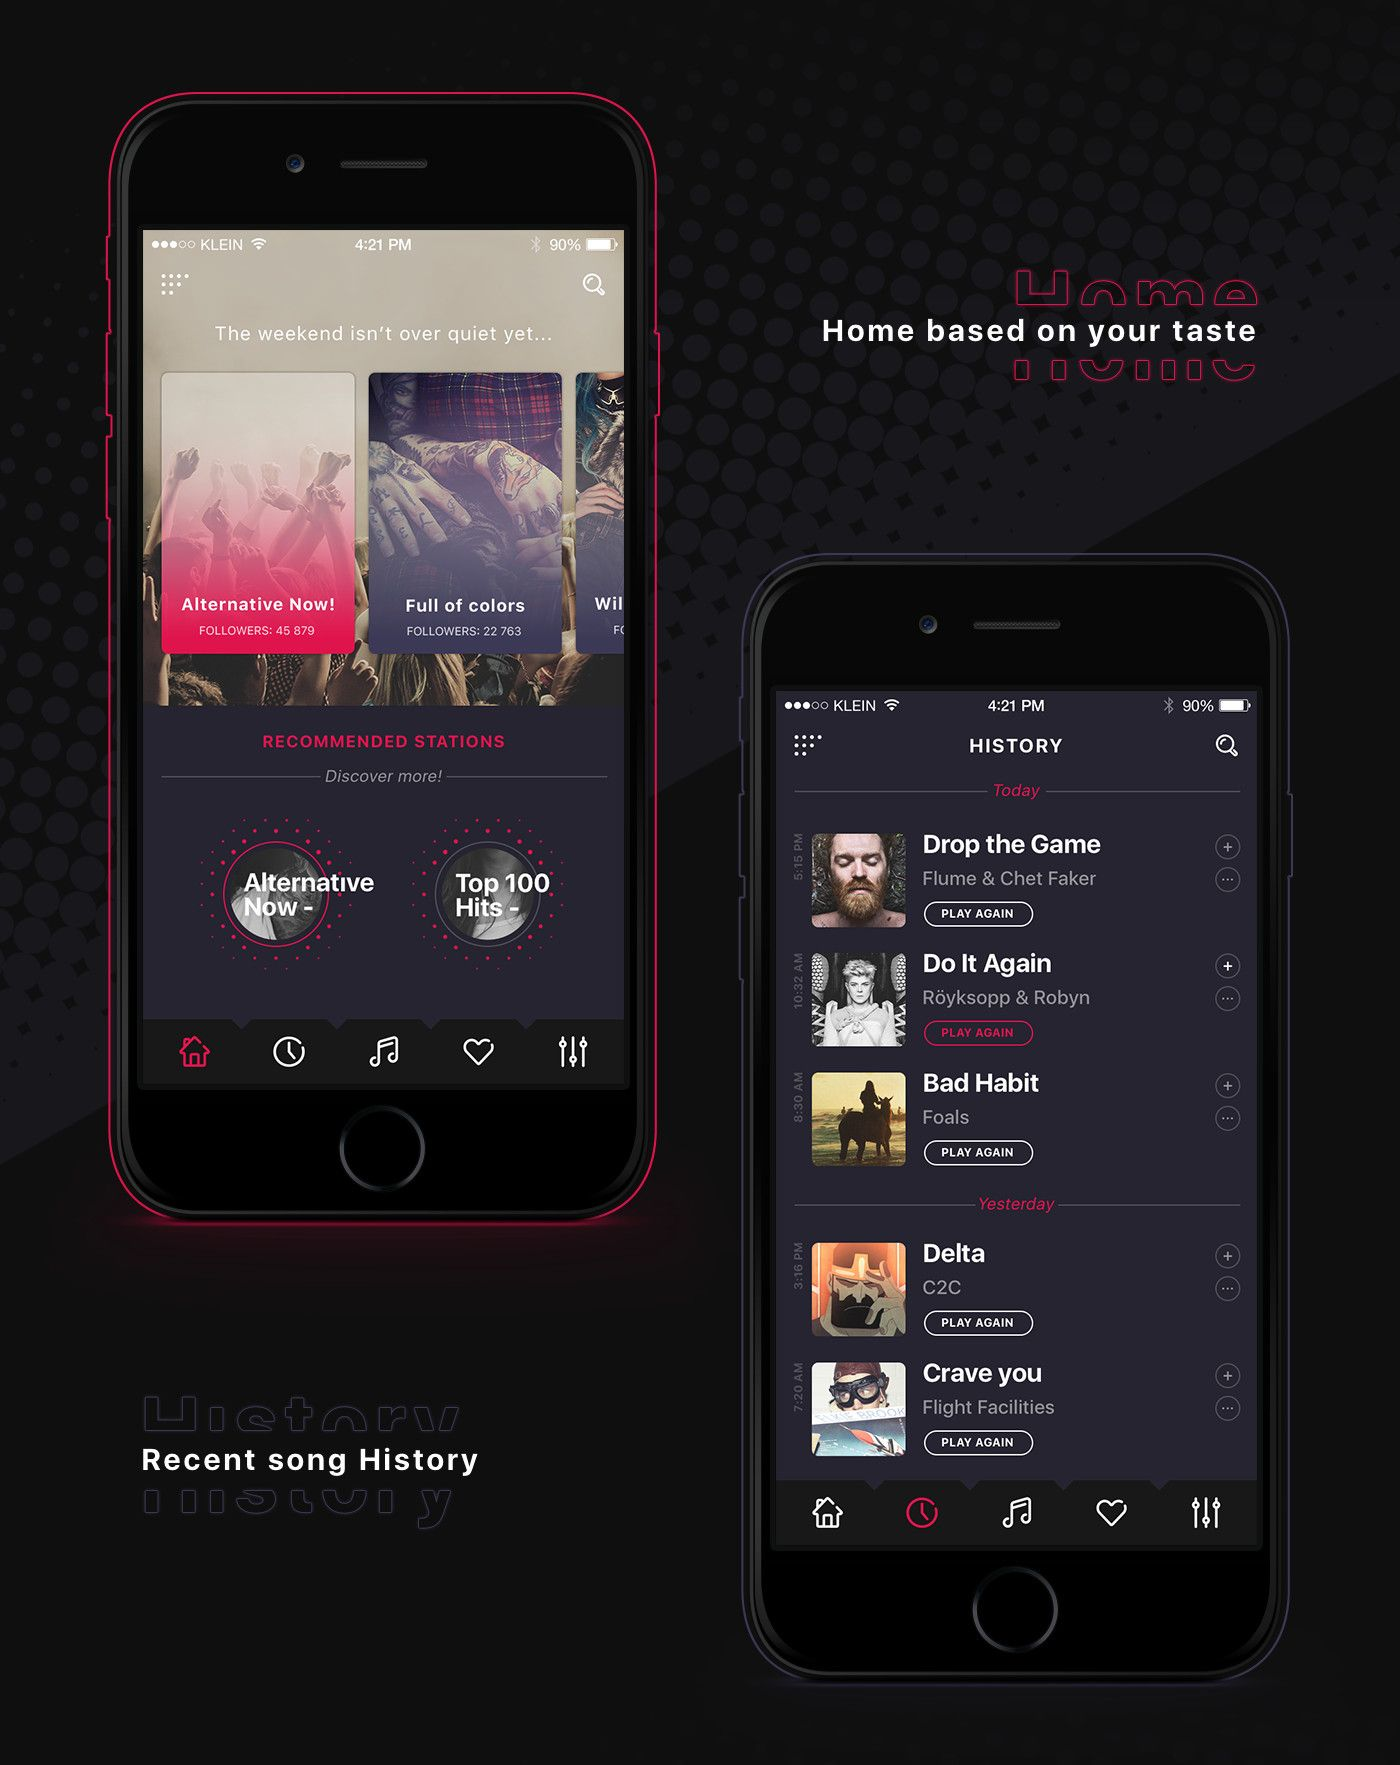 Alt Radio app on Behance | APP界面 | Mobile app ui, Free internet